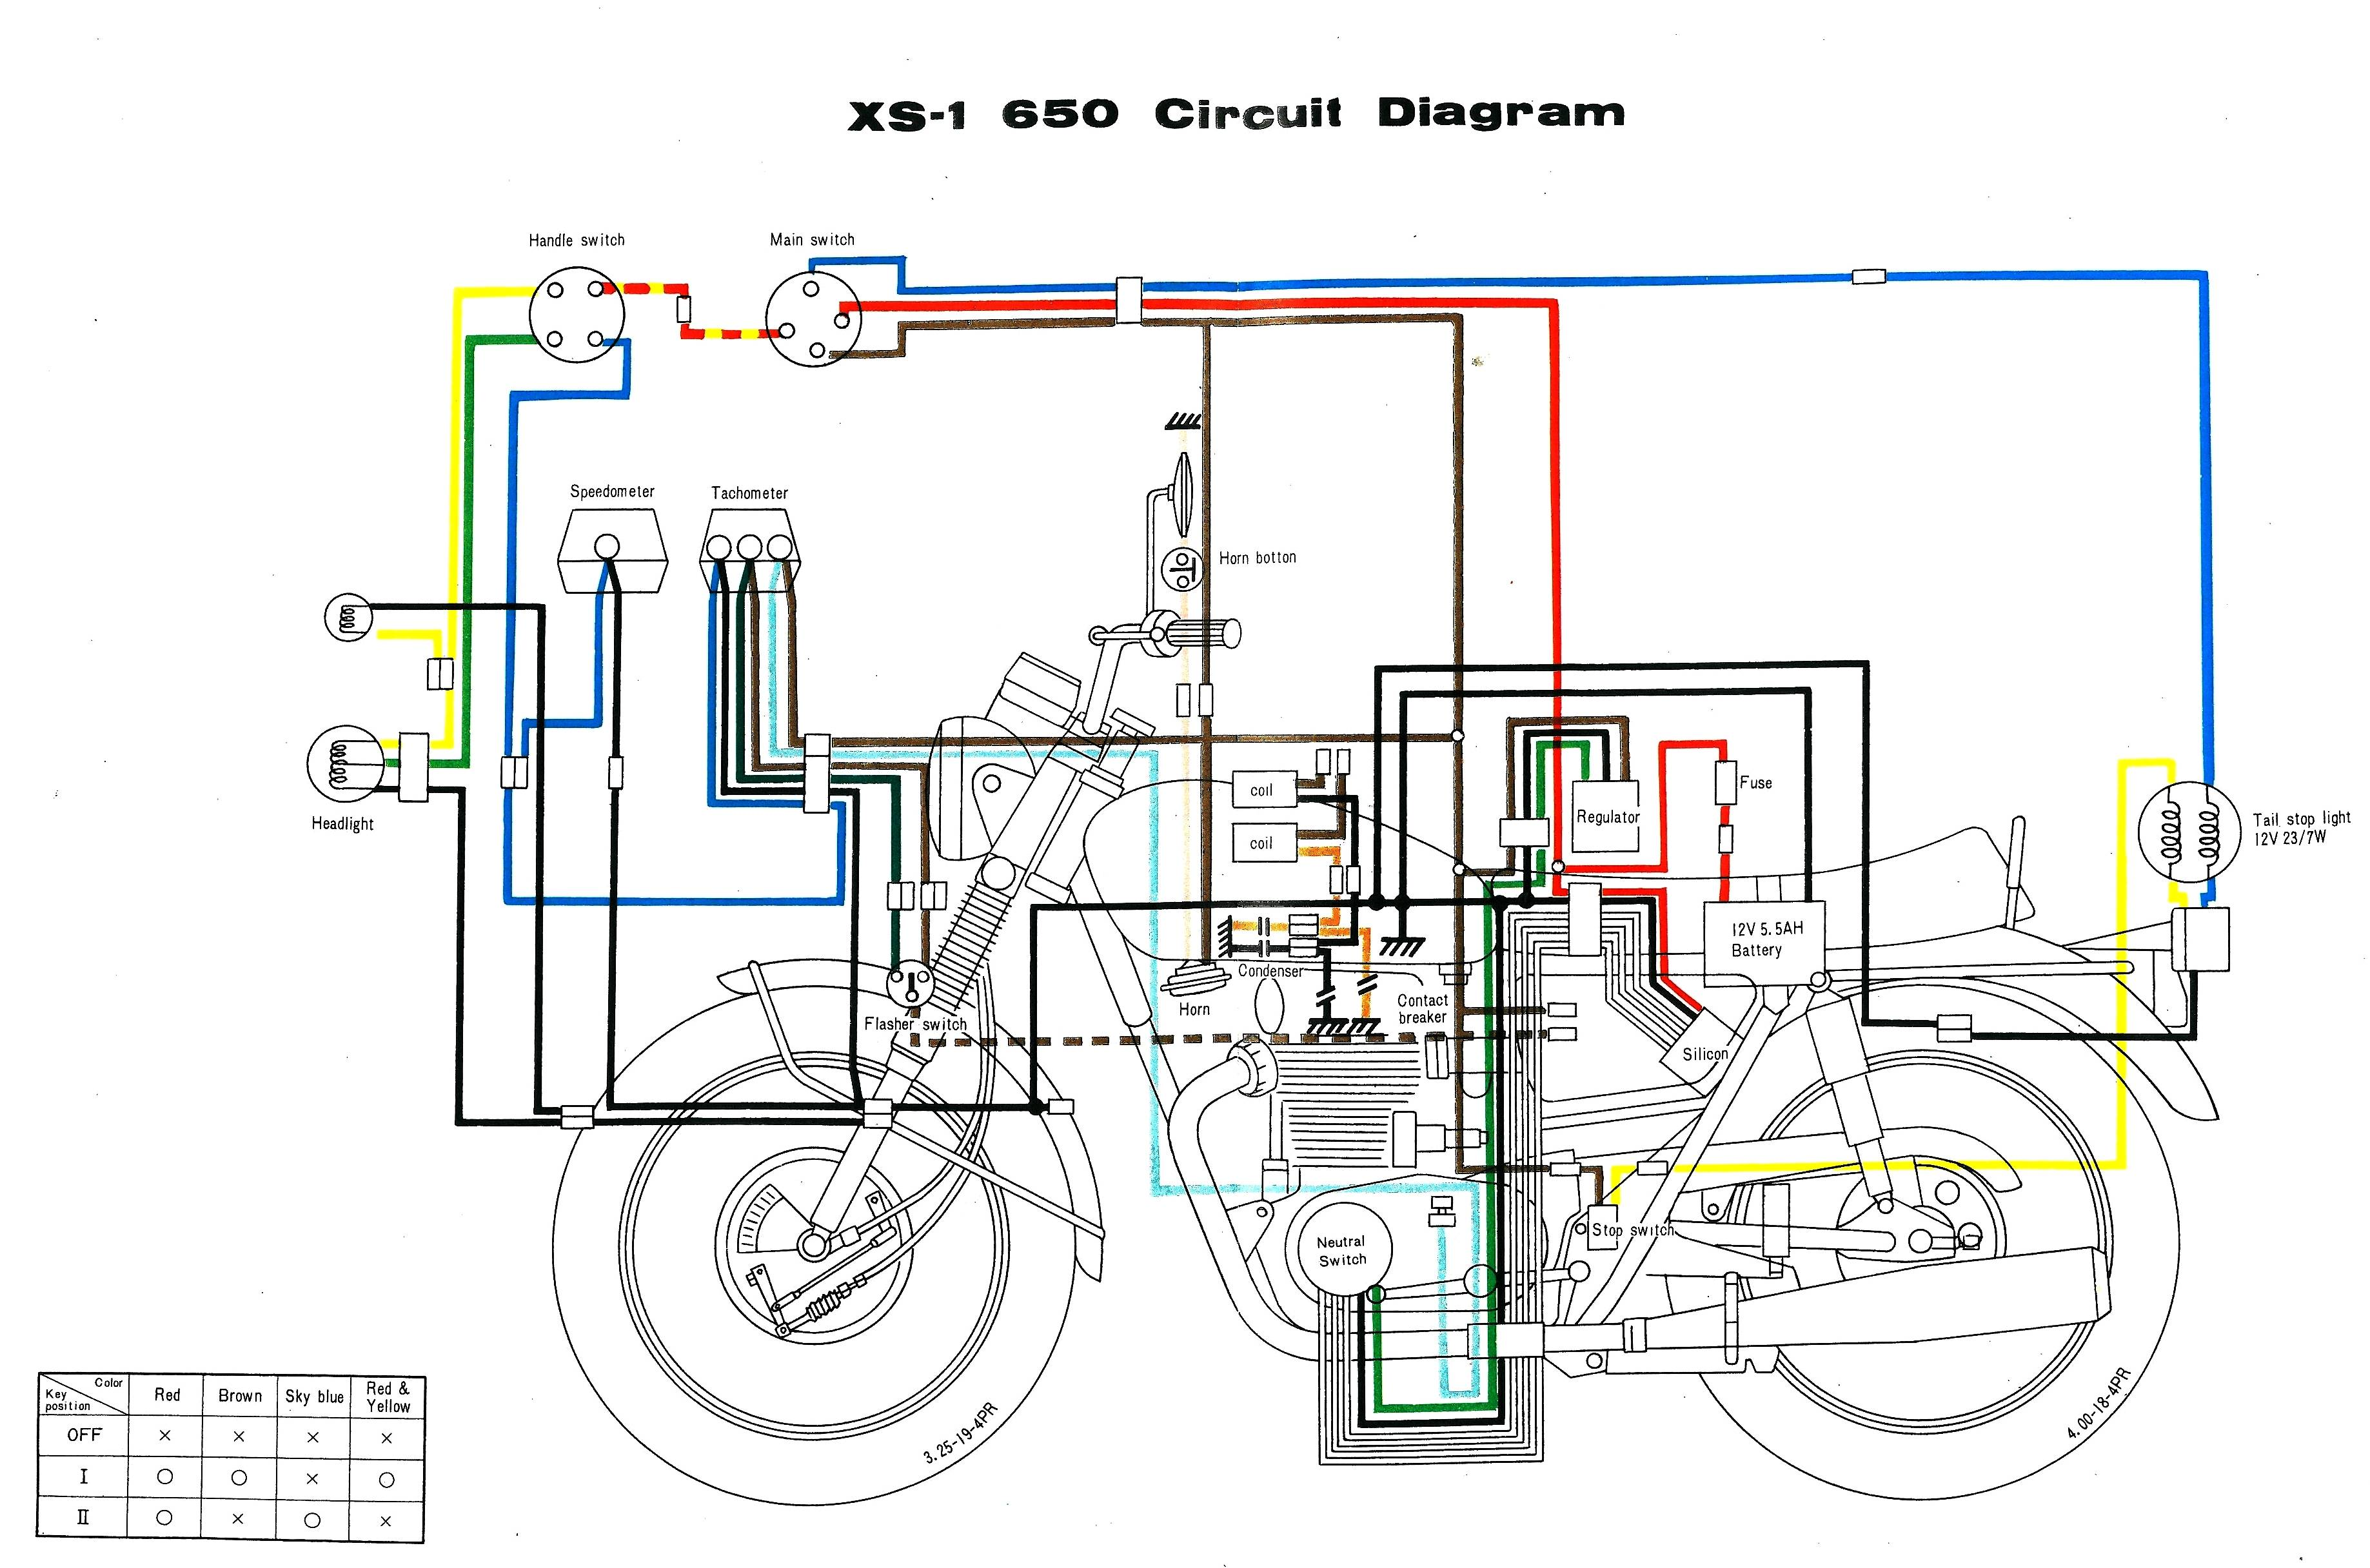 The Best Free Household Drawing Images Download From 50 Wiring Diagram 3675x2432 Diagrams Electrical With Www